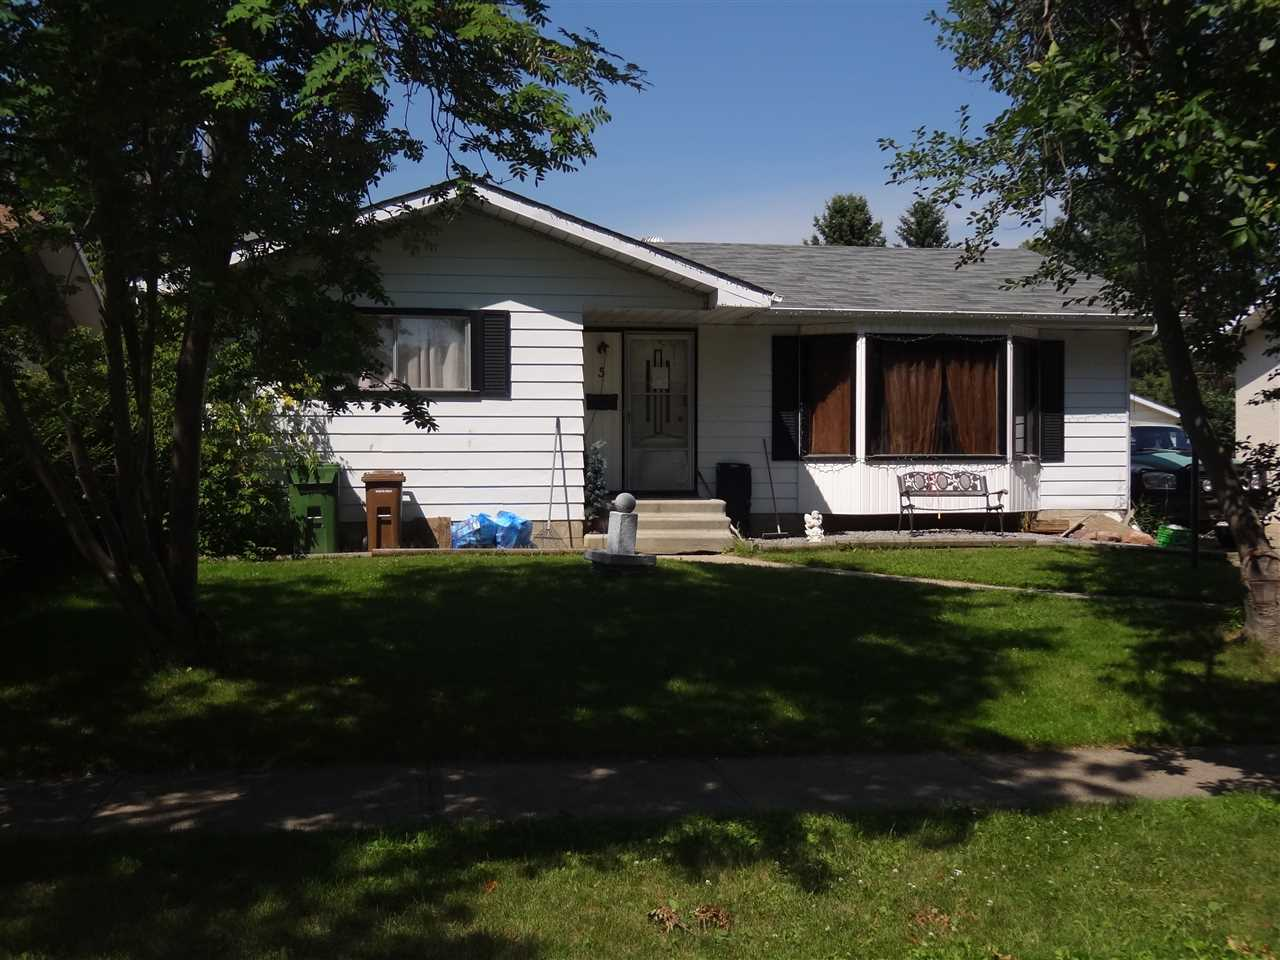 Main Photo: 5 MILBURN Crescent: St. Albert House for sale : MLS(r) # E4074900